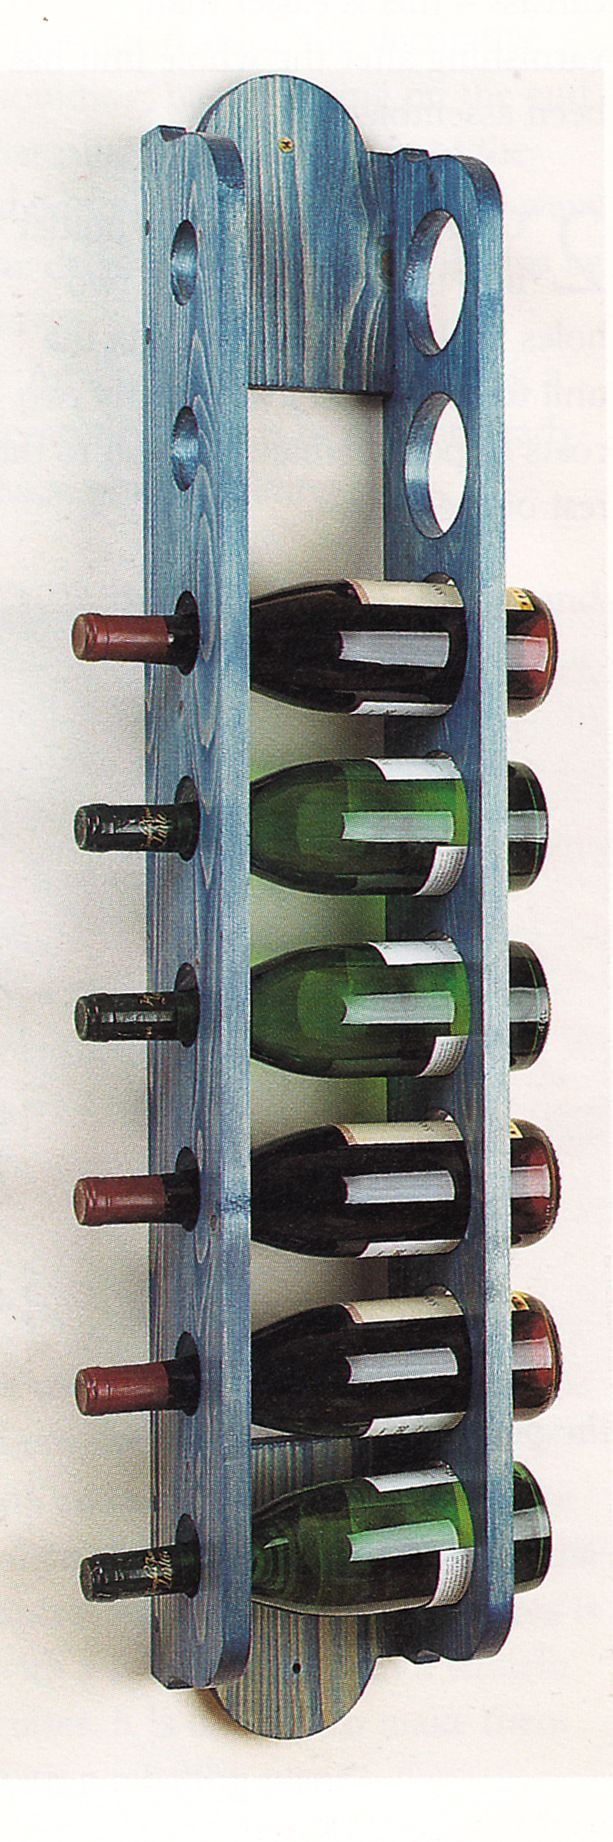 best diy wine racks ideas on pinterest  wine rack inspiration  - wine rack design from spacesaving furniture projects for the home by davemackenzie if interested please ask for a free quote on this item